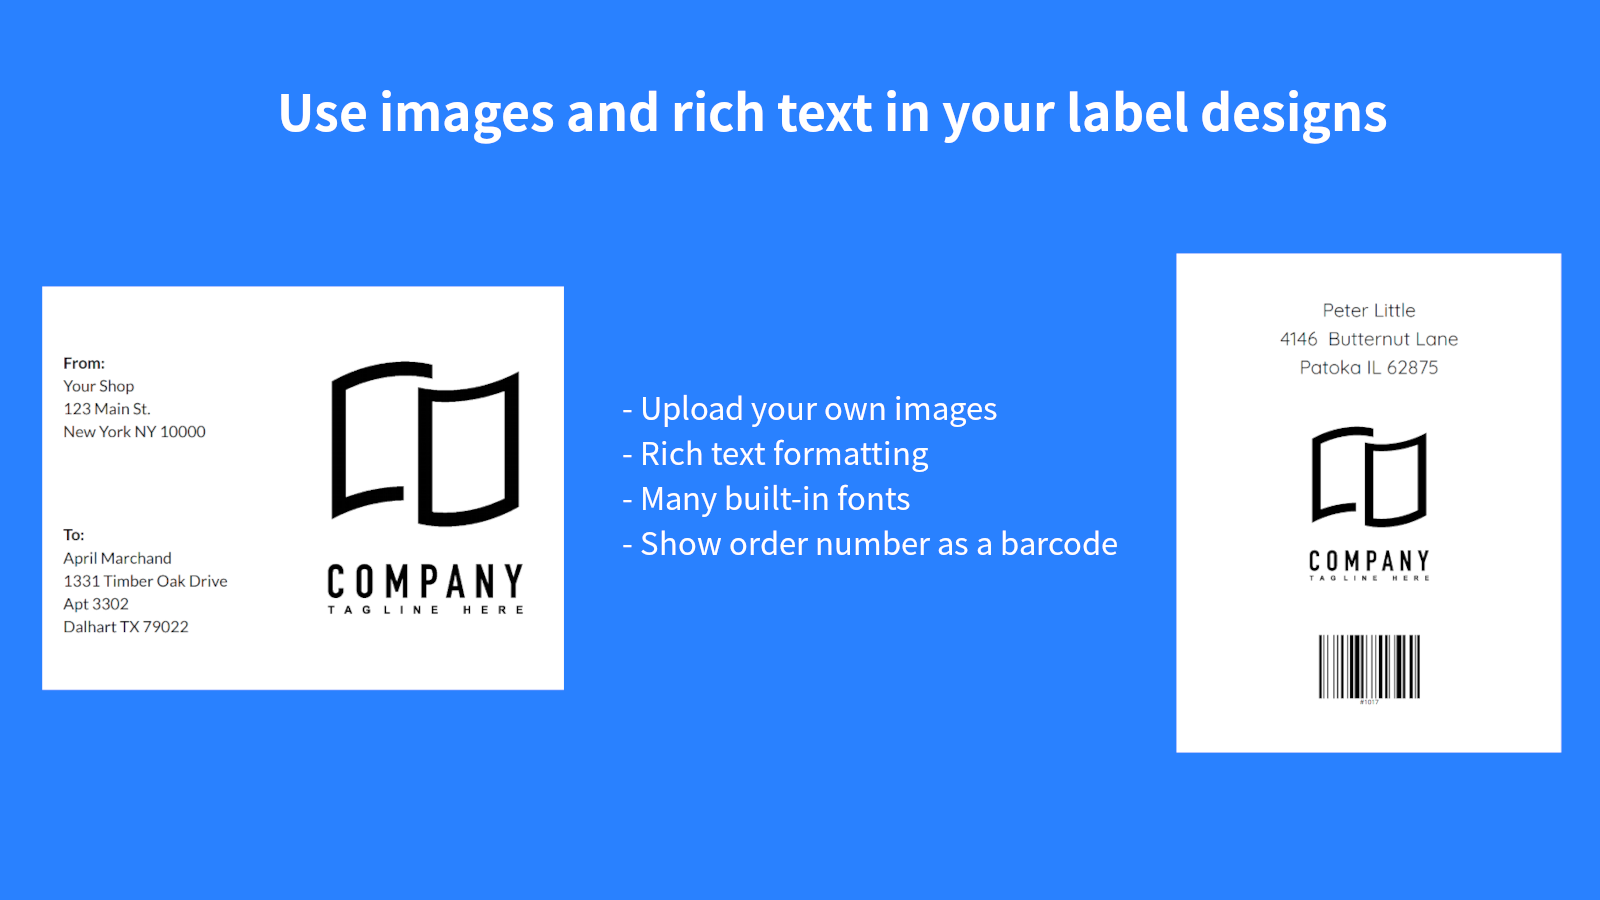 Use images and rich text in your label designs